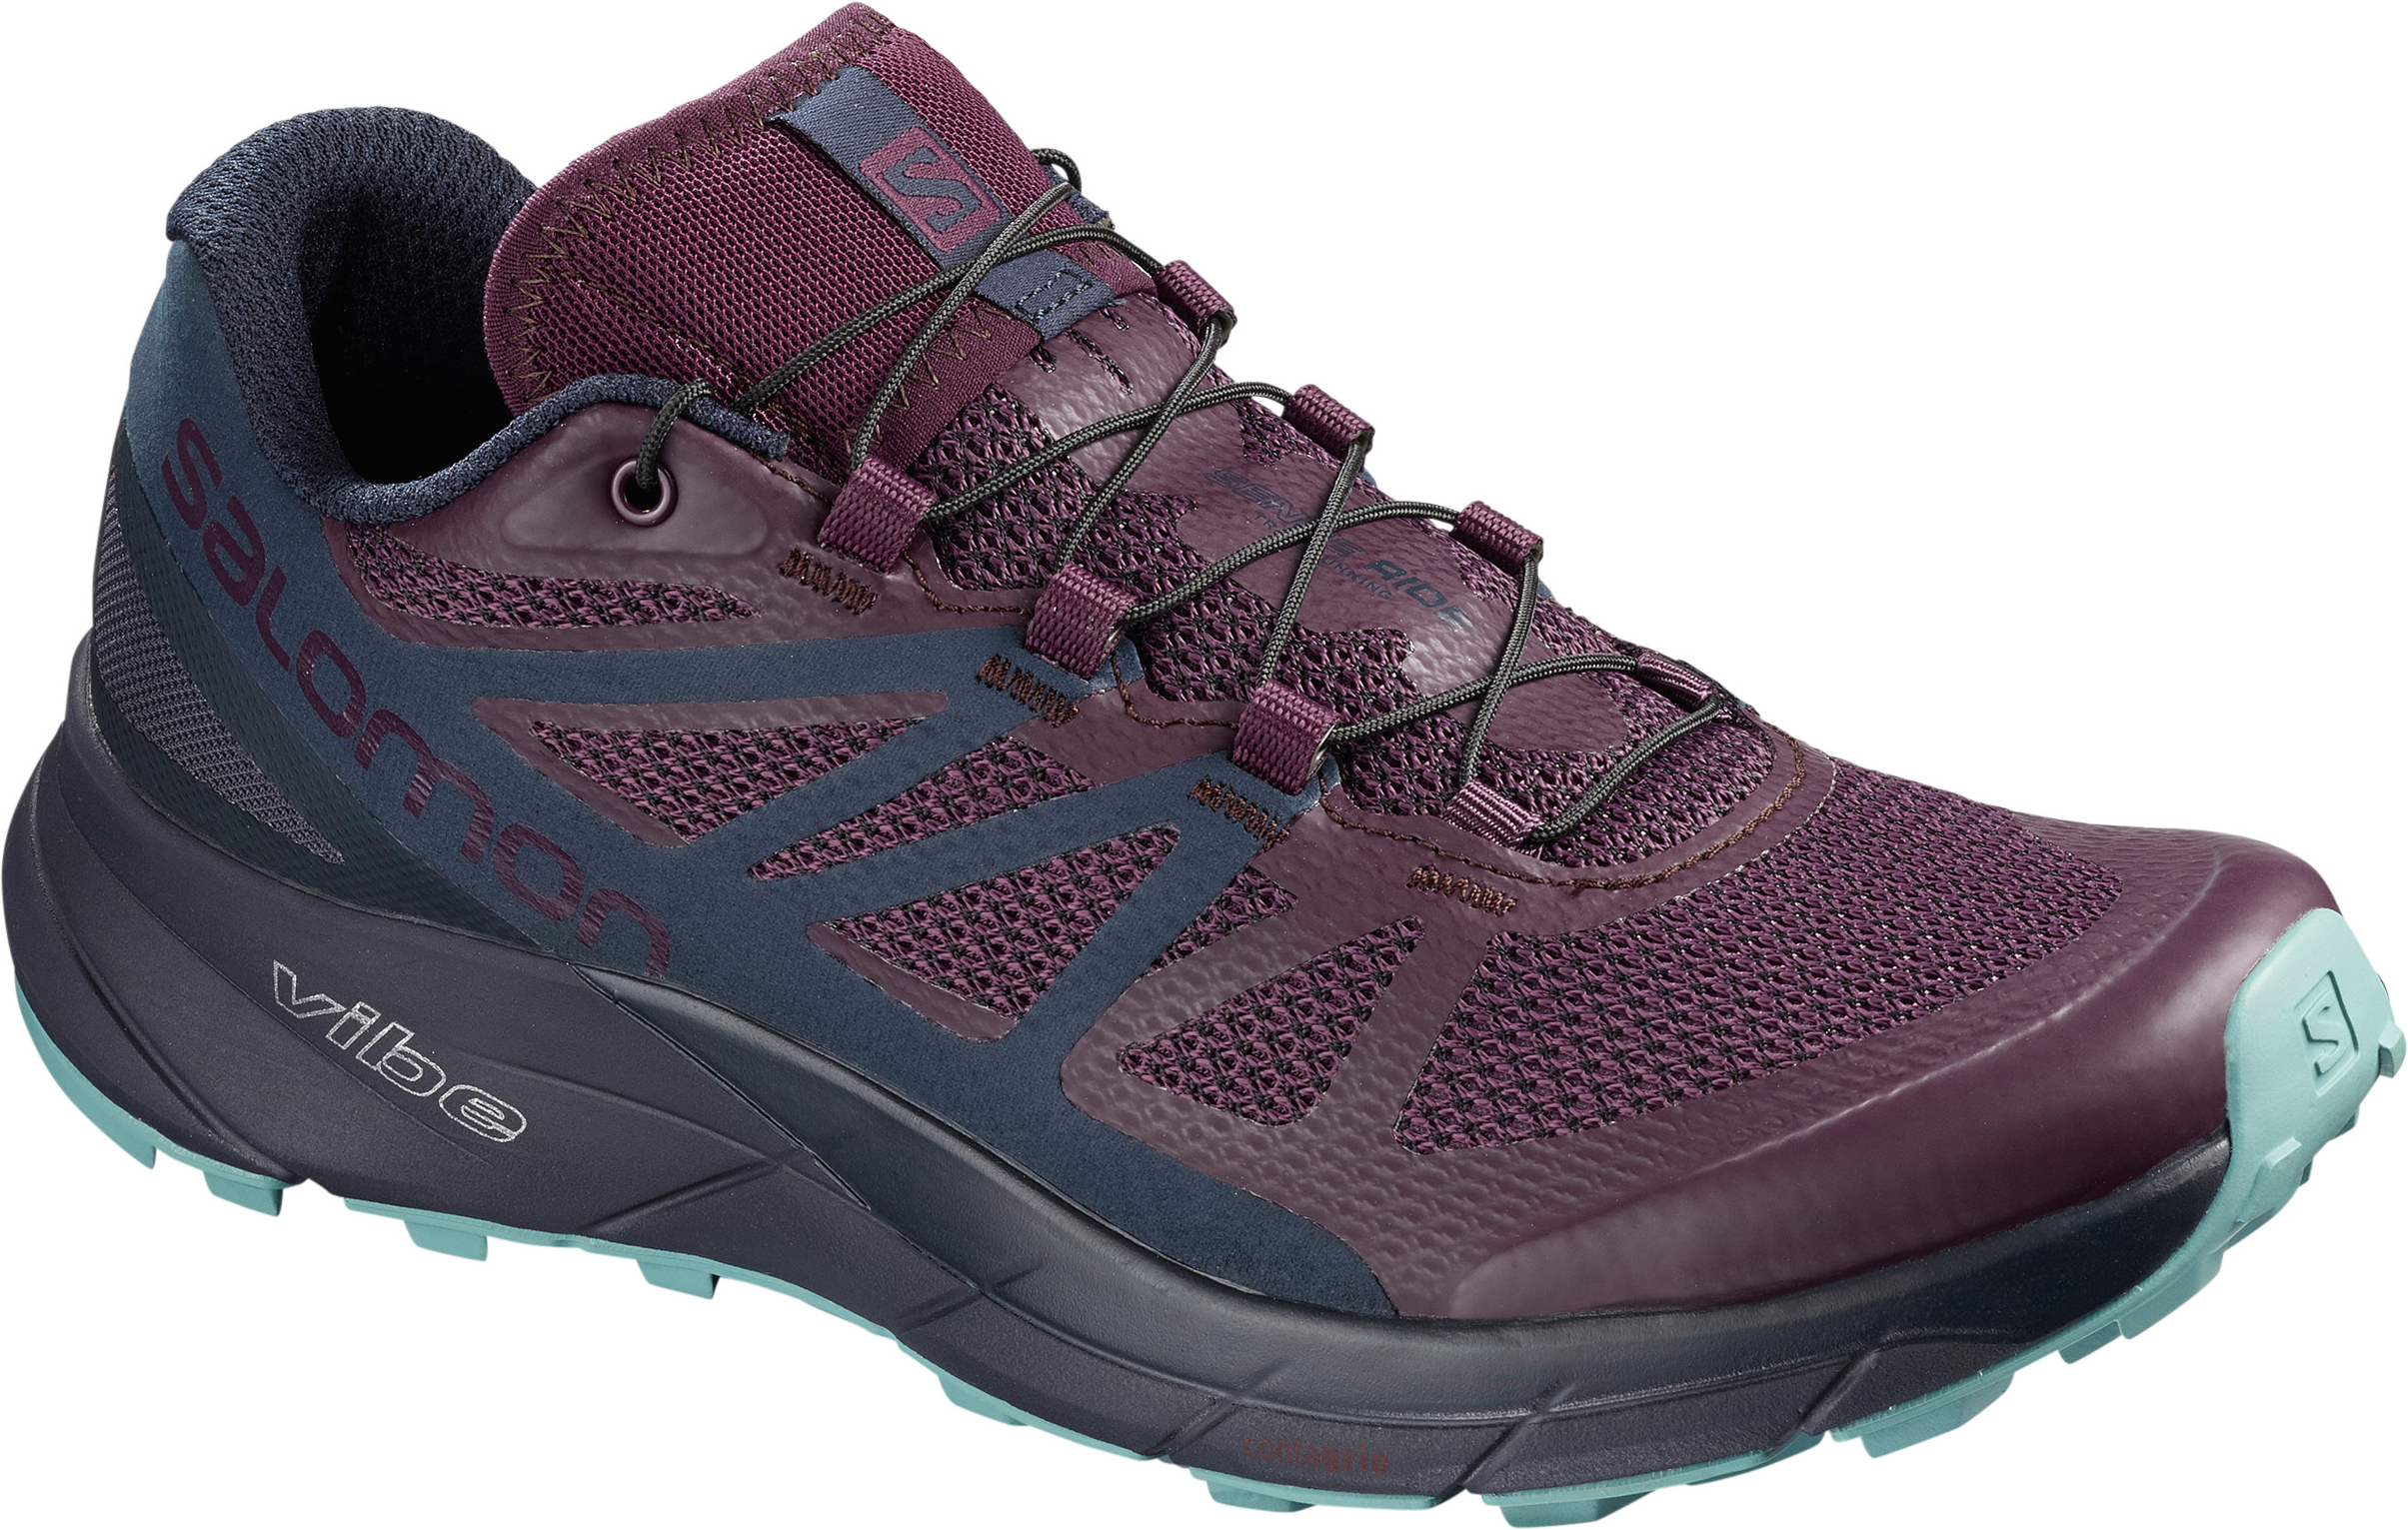 1e968d3dcaf2 Women s Running and training footwear